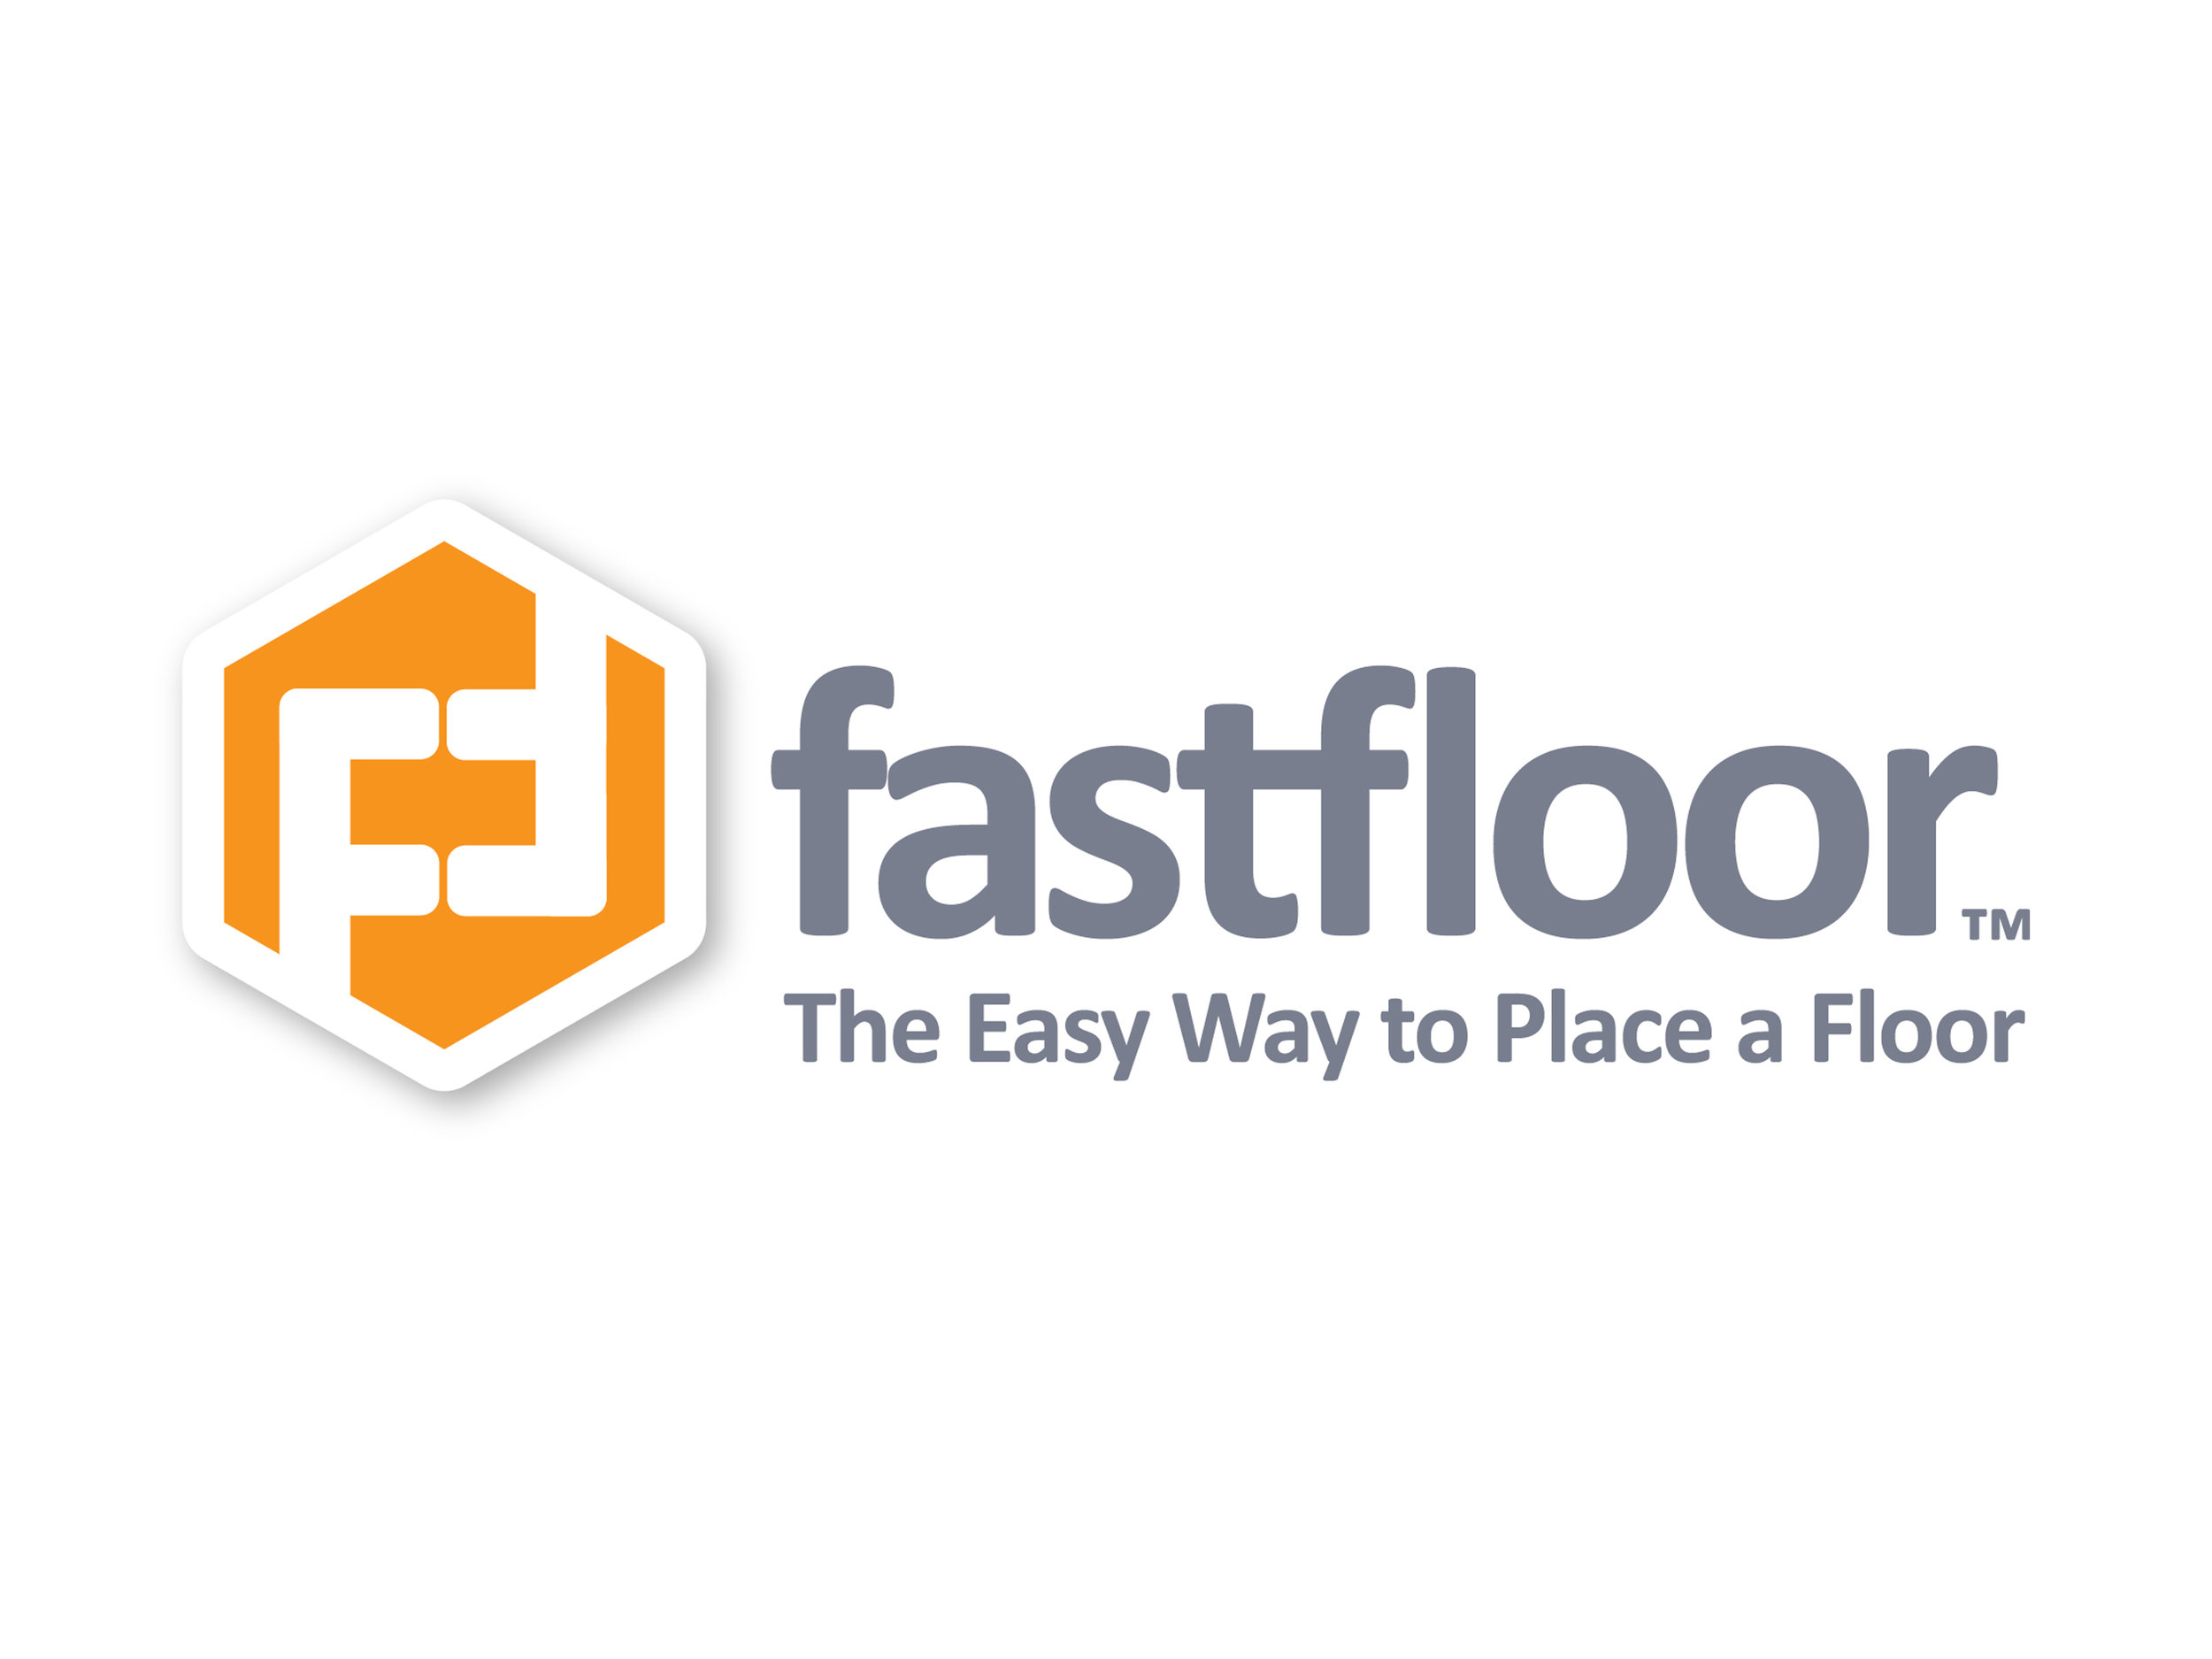 CLICK HERE TO SEE OTHER ASSETS THAT WHOVILLE HAS CREATED FOR FASTFLOOR